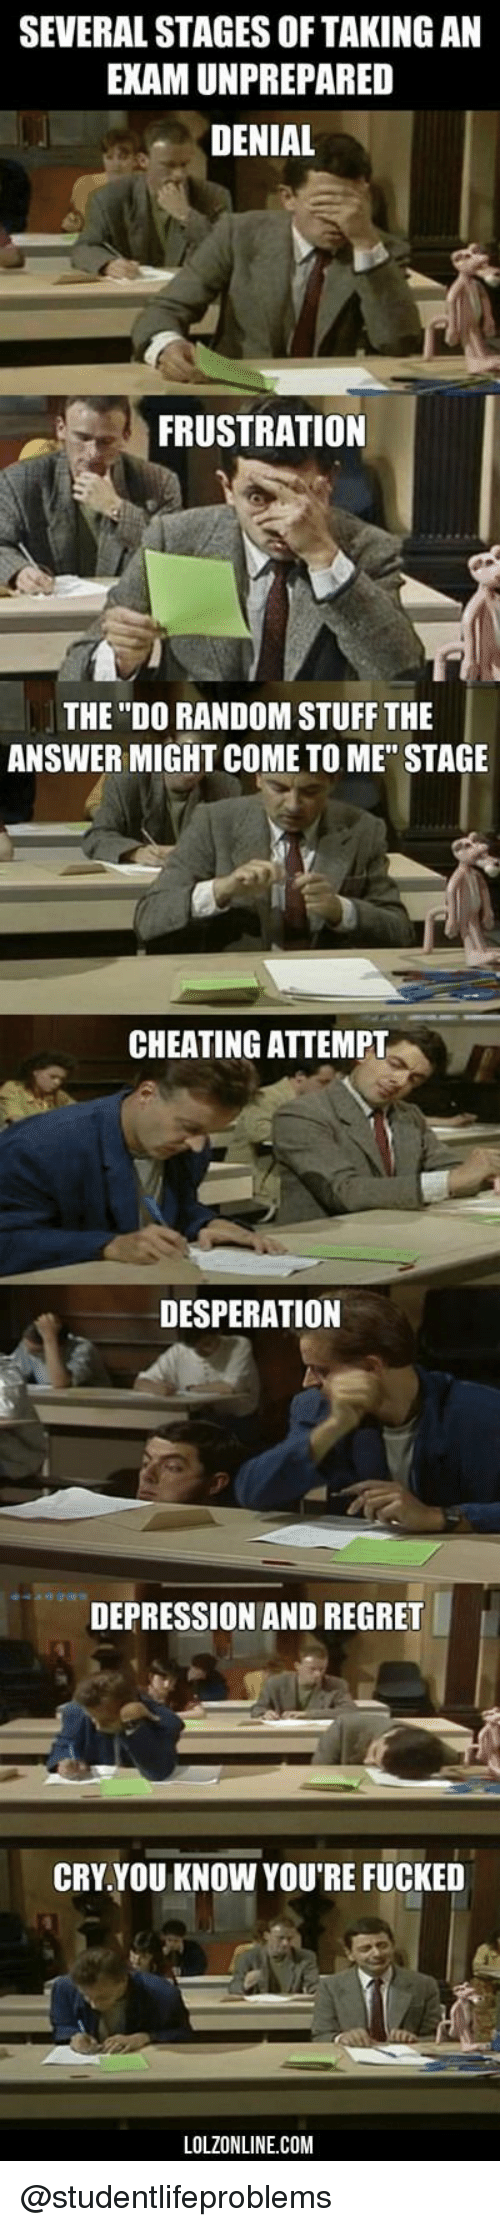 """Desperation: SEVERAL STAGES OF TAKING AN  EXAM UNPREPARED  DENIAL  FRUSTRATION  THE """"DO RANDOM STUFF THE  ANSWER MIGHT COME TO ME"""" STAGE  CHEATING ATTEMPT  DESPERATION  DEPRESSION AND REGRET  CRY.YOU KNOW YOU'RE FUCKED  LOLZONLINE.COM @studentlifeproblems"""